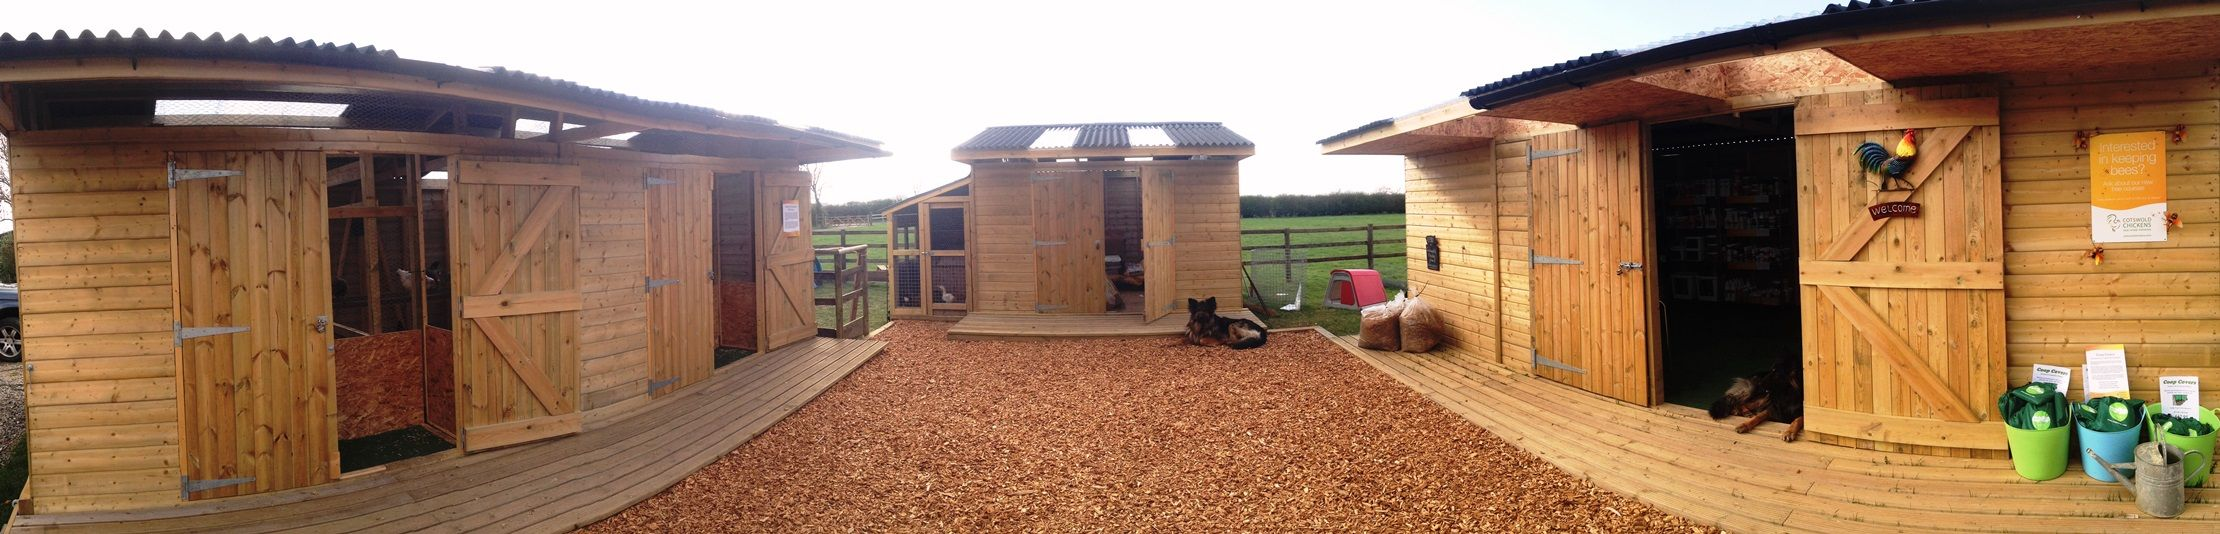 Cotswold Chickens and Home Farming - Edgehill Stud